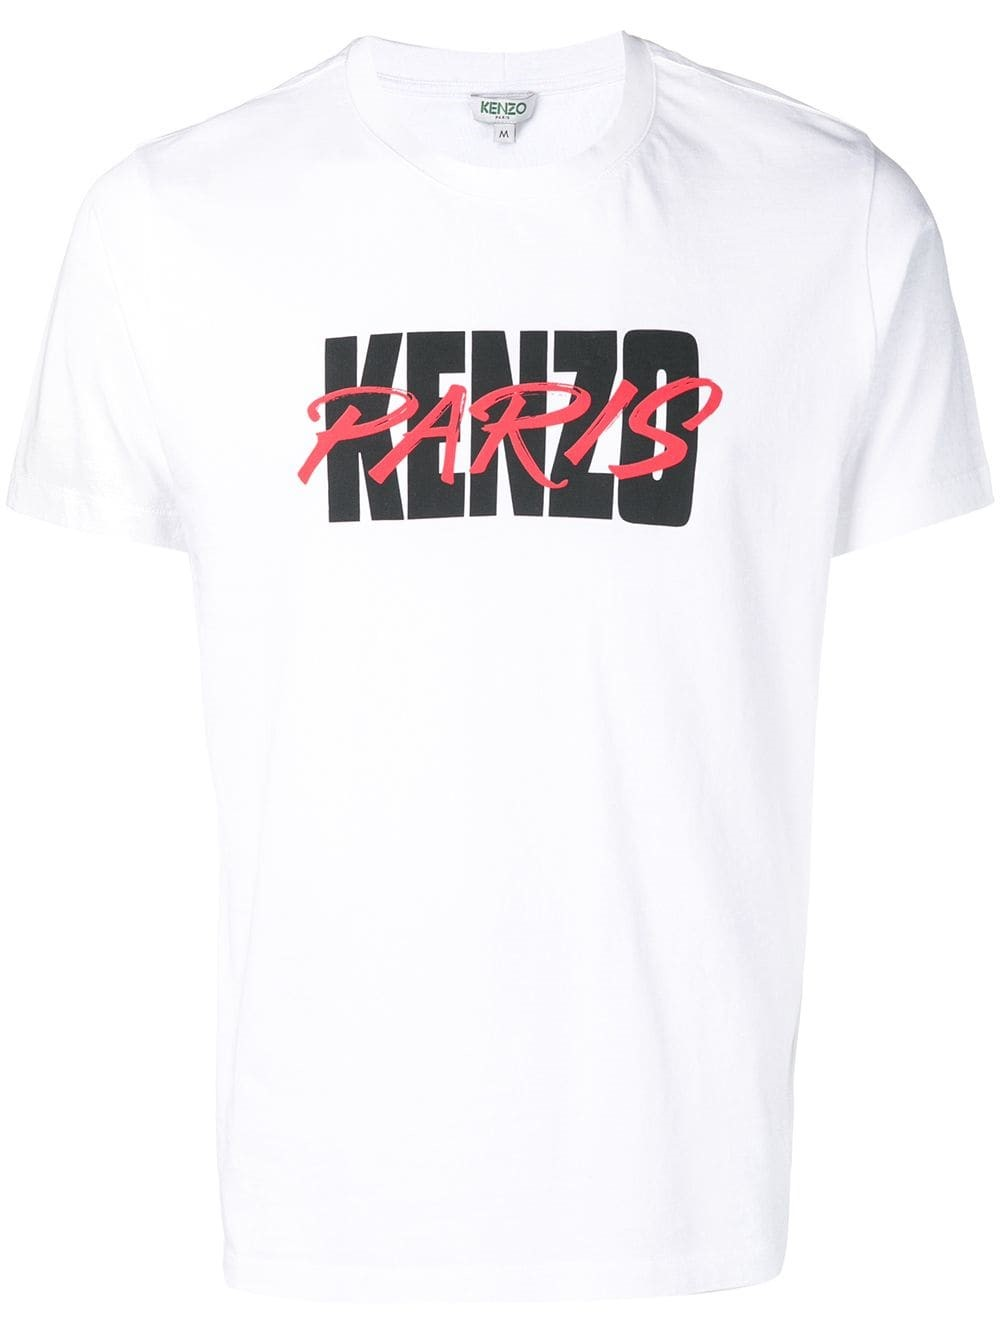 35905d99 kenzo KENZO PARIS T-SHIRT available on montiboutique.com - 26211